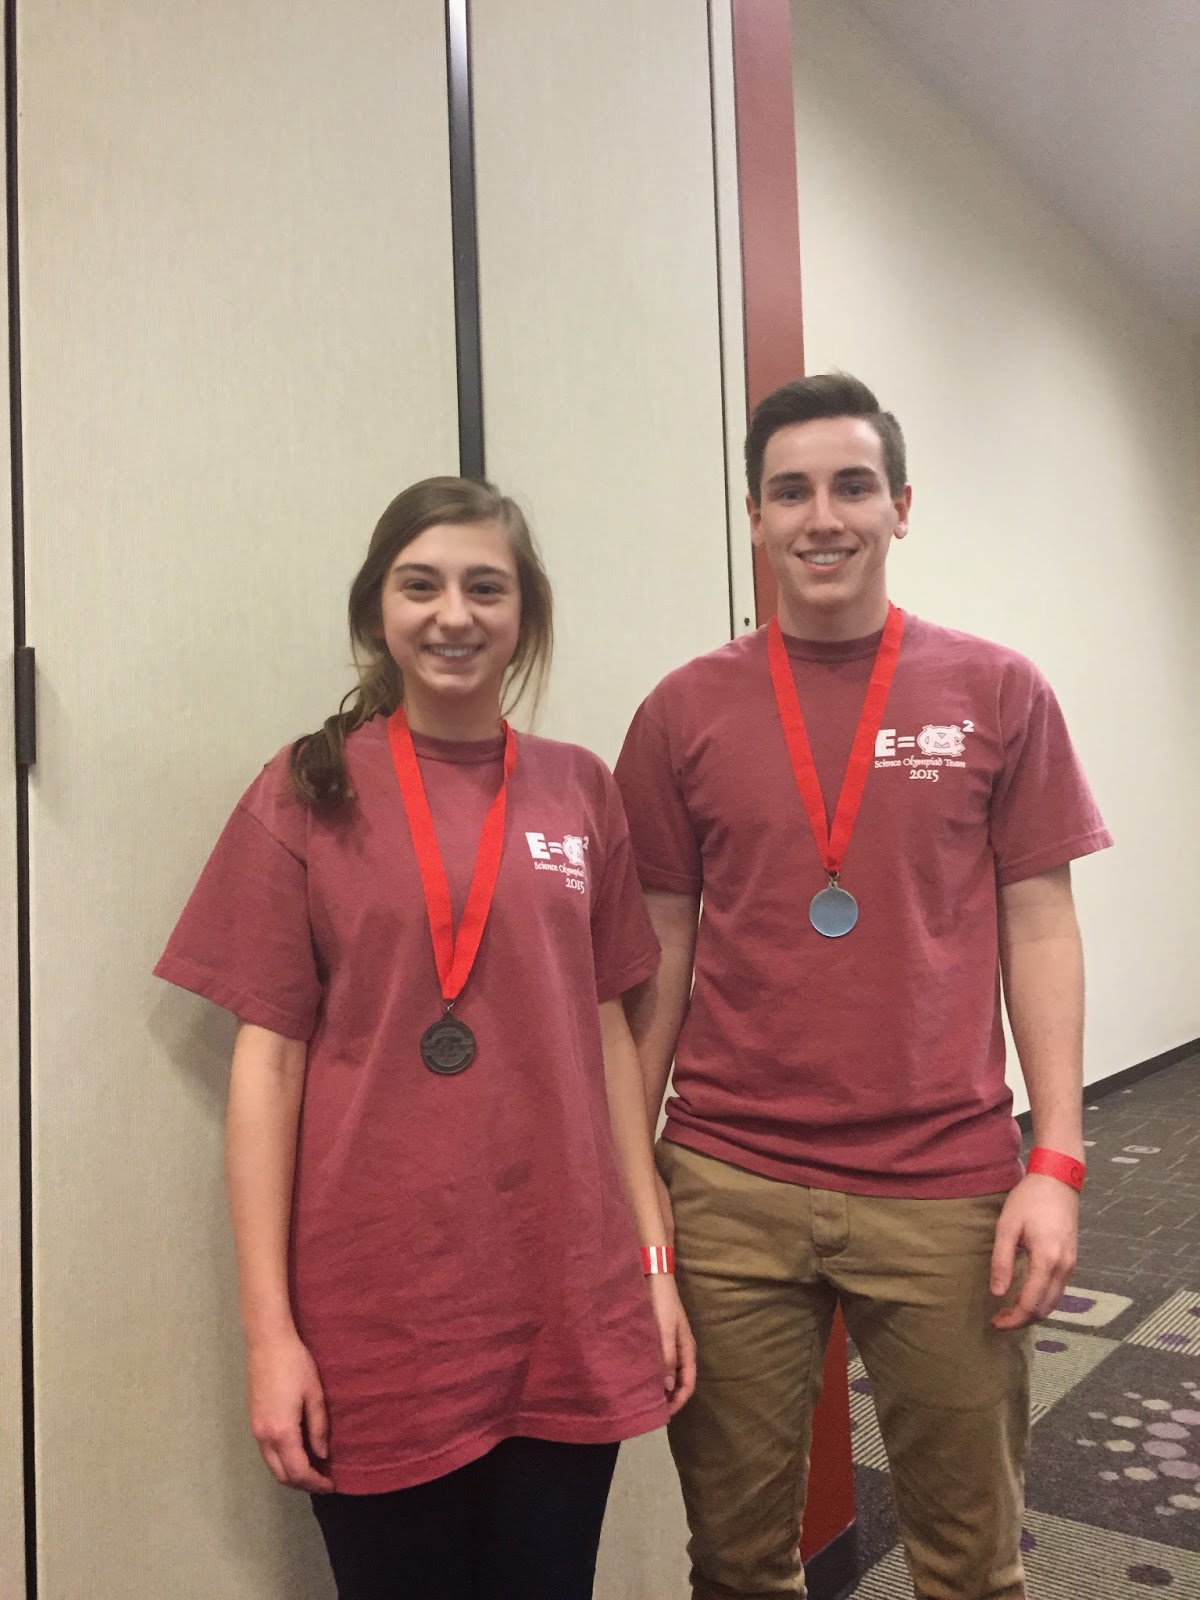 Montgomery Catholic's Science Olympiad Team Competes at Regional Tournament in Mobile 2